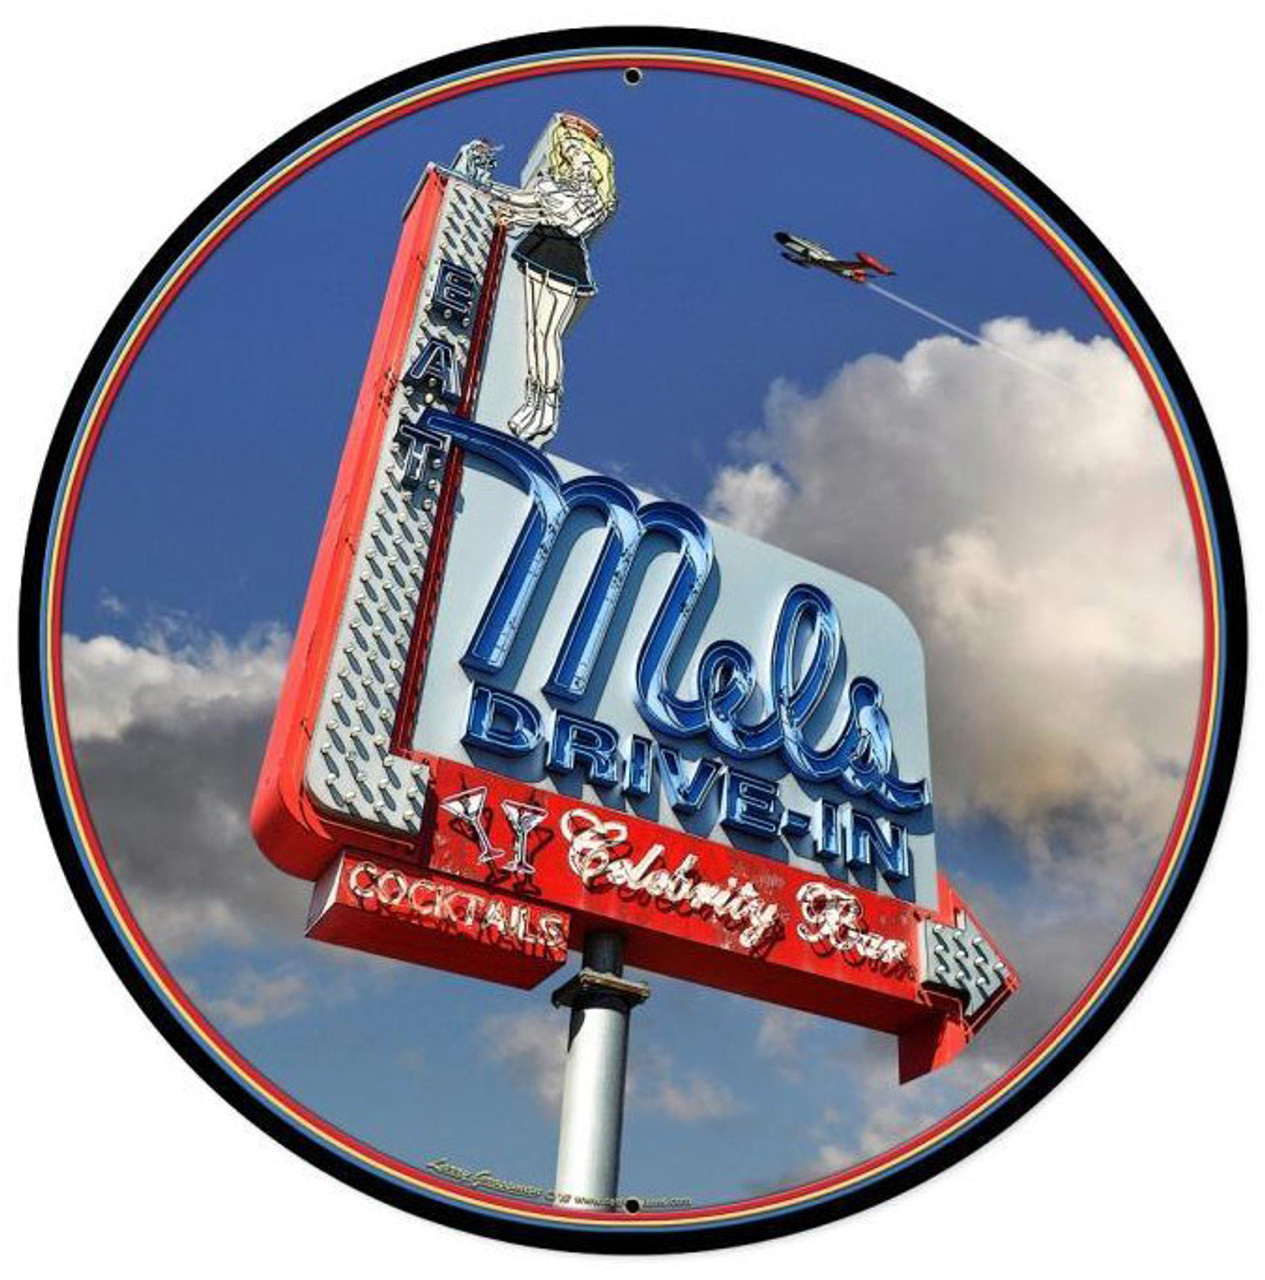 Mels Daytime Round Metal Sign 14 x 14 Inches